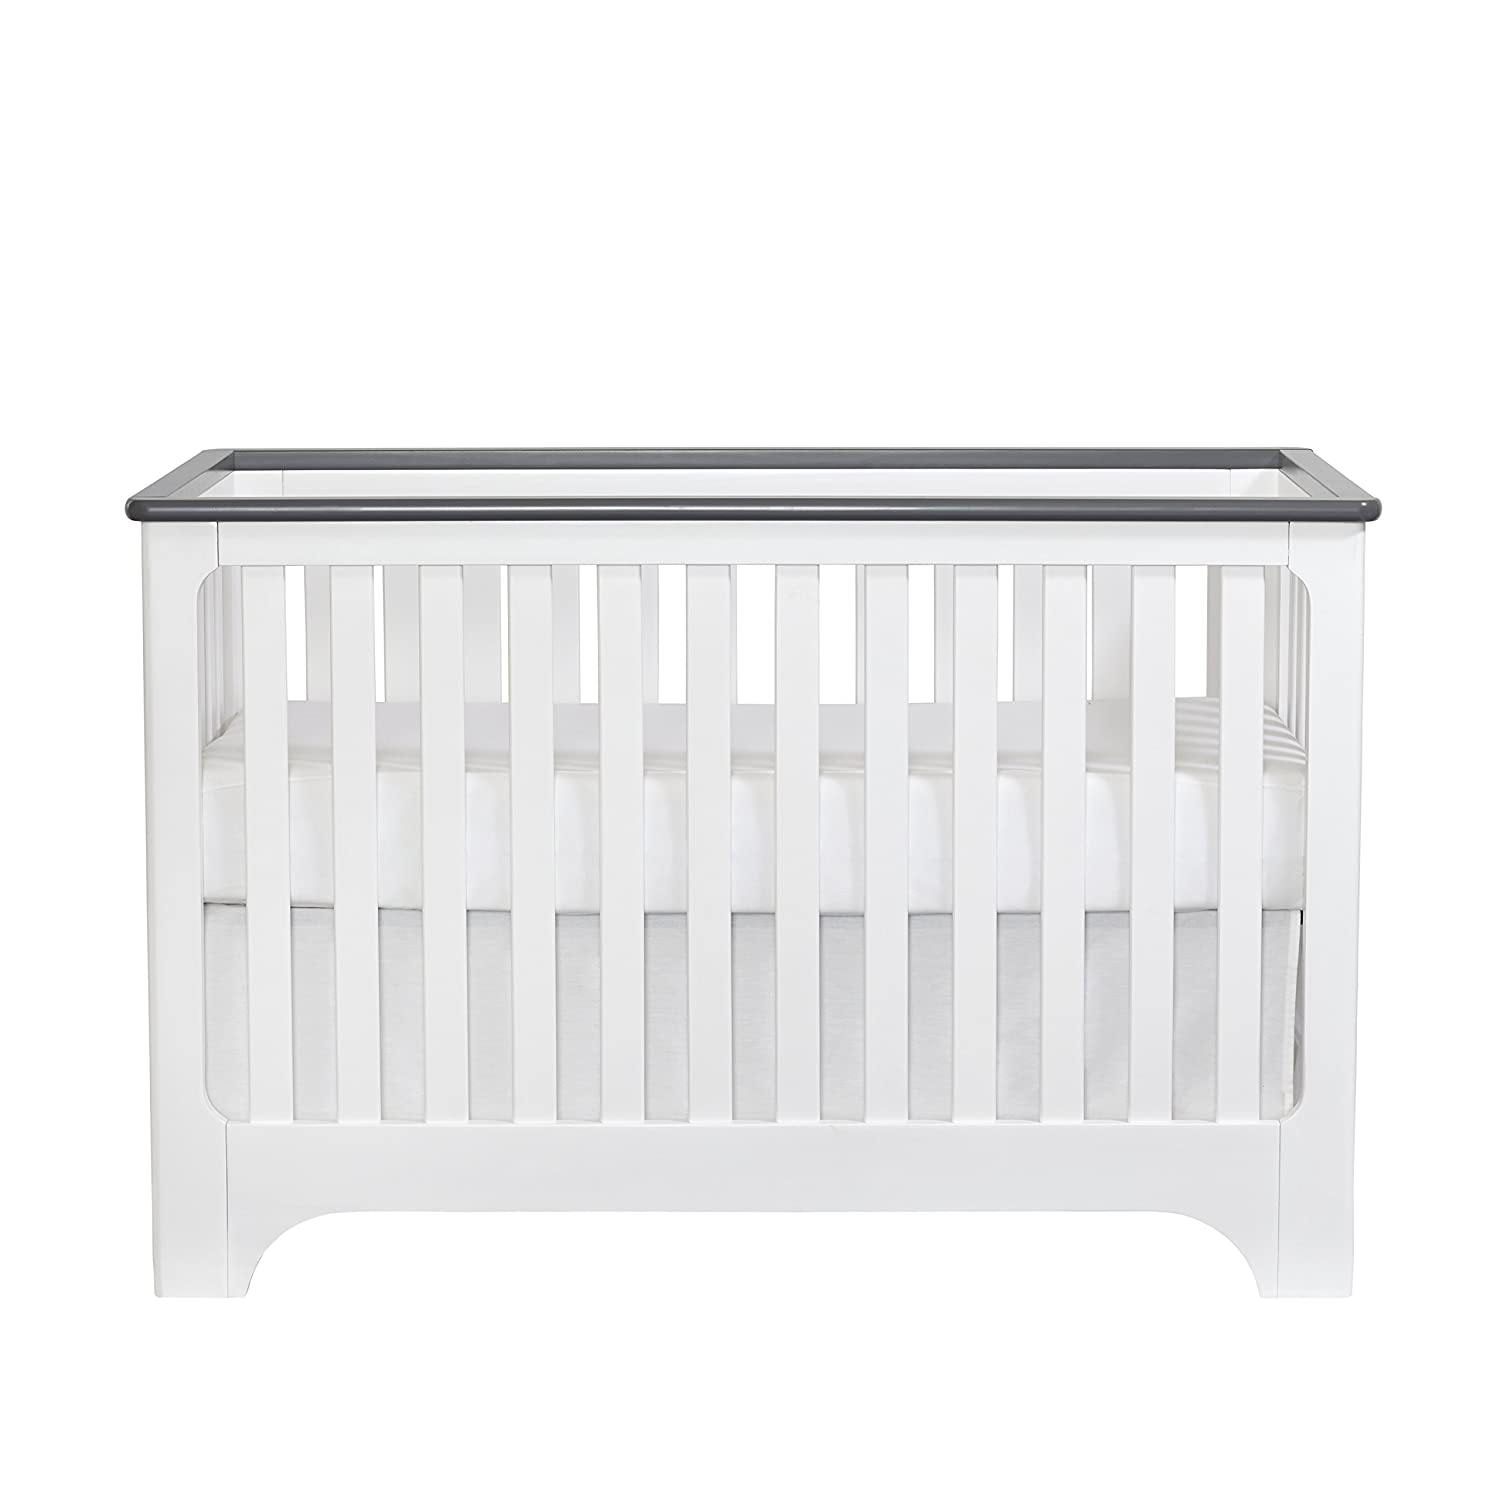 Suite Bebe Brooklyn Island 3 in 1 Convertible Crib White/Grey